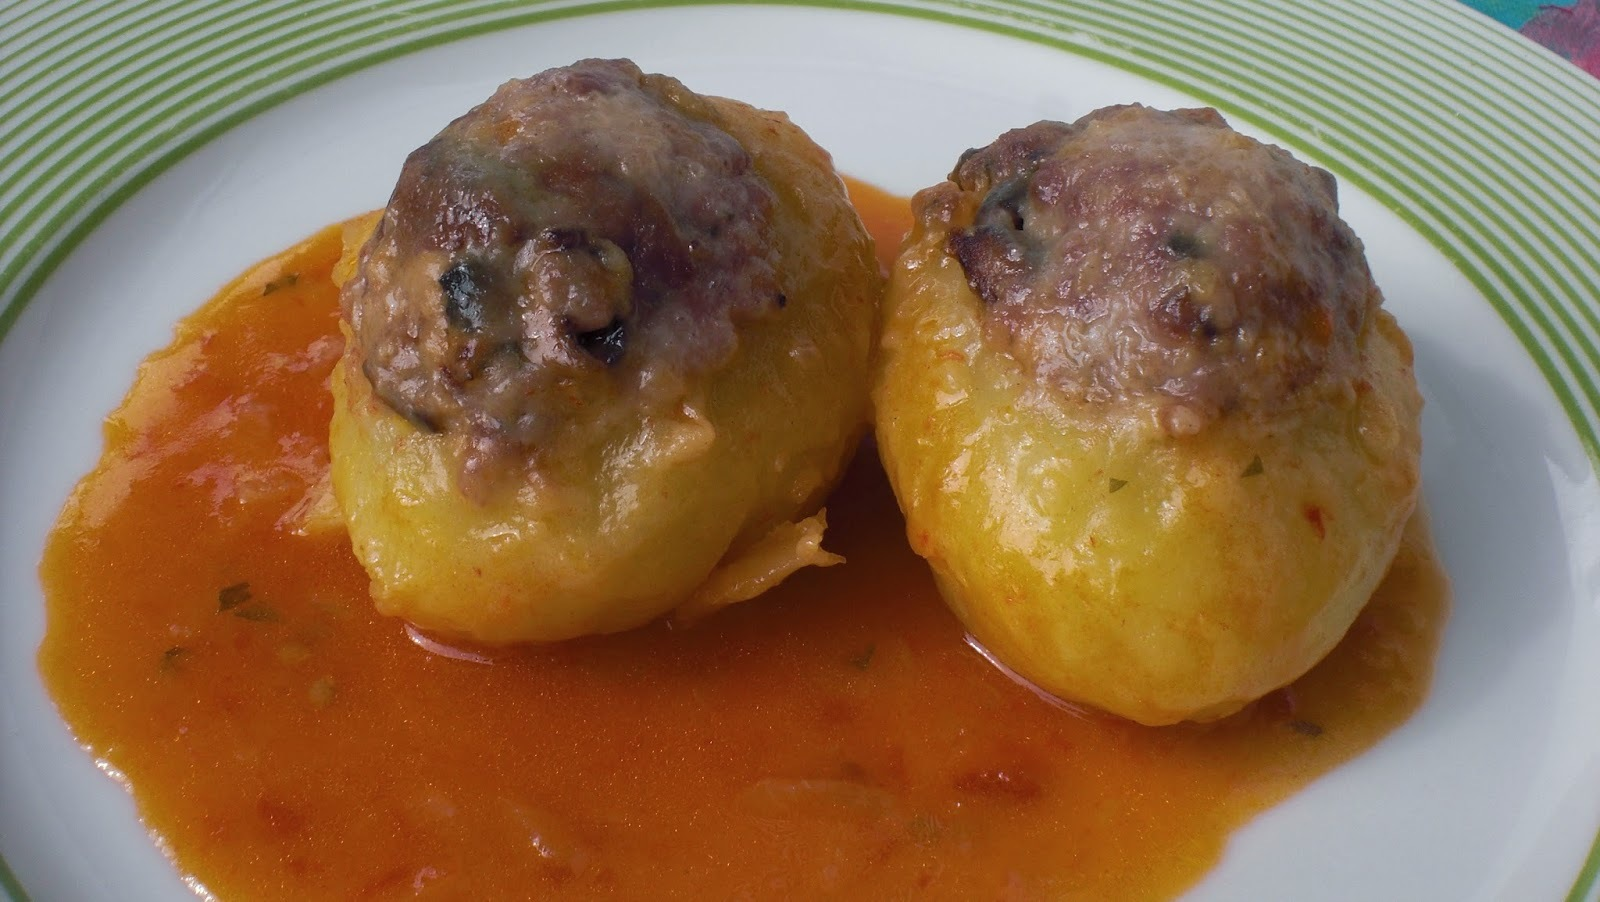 patates farcides de carn i rovellons